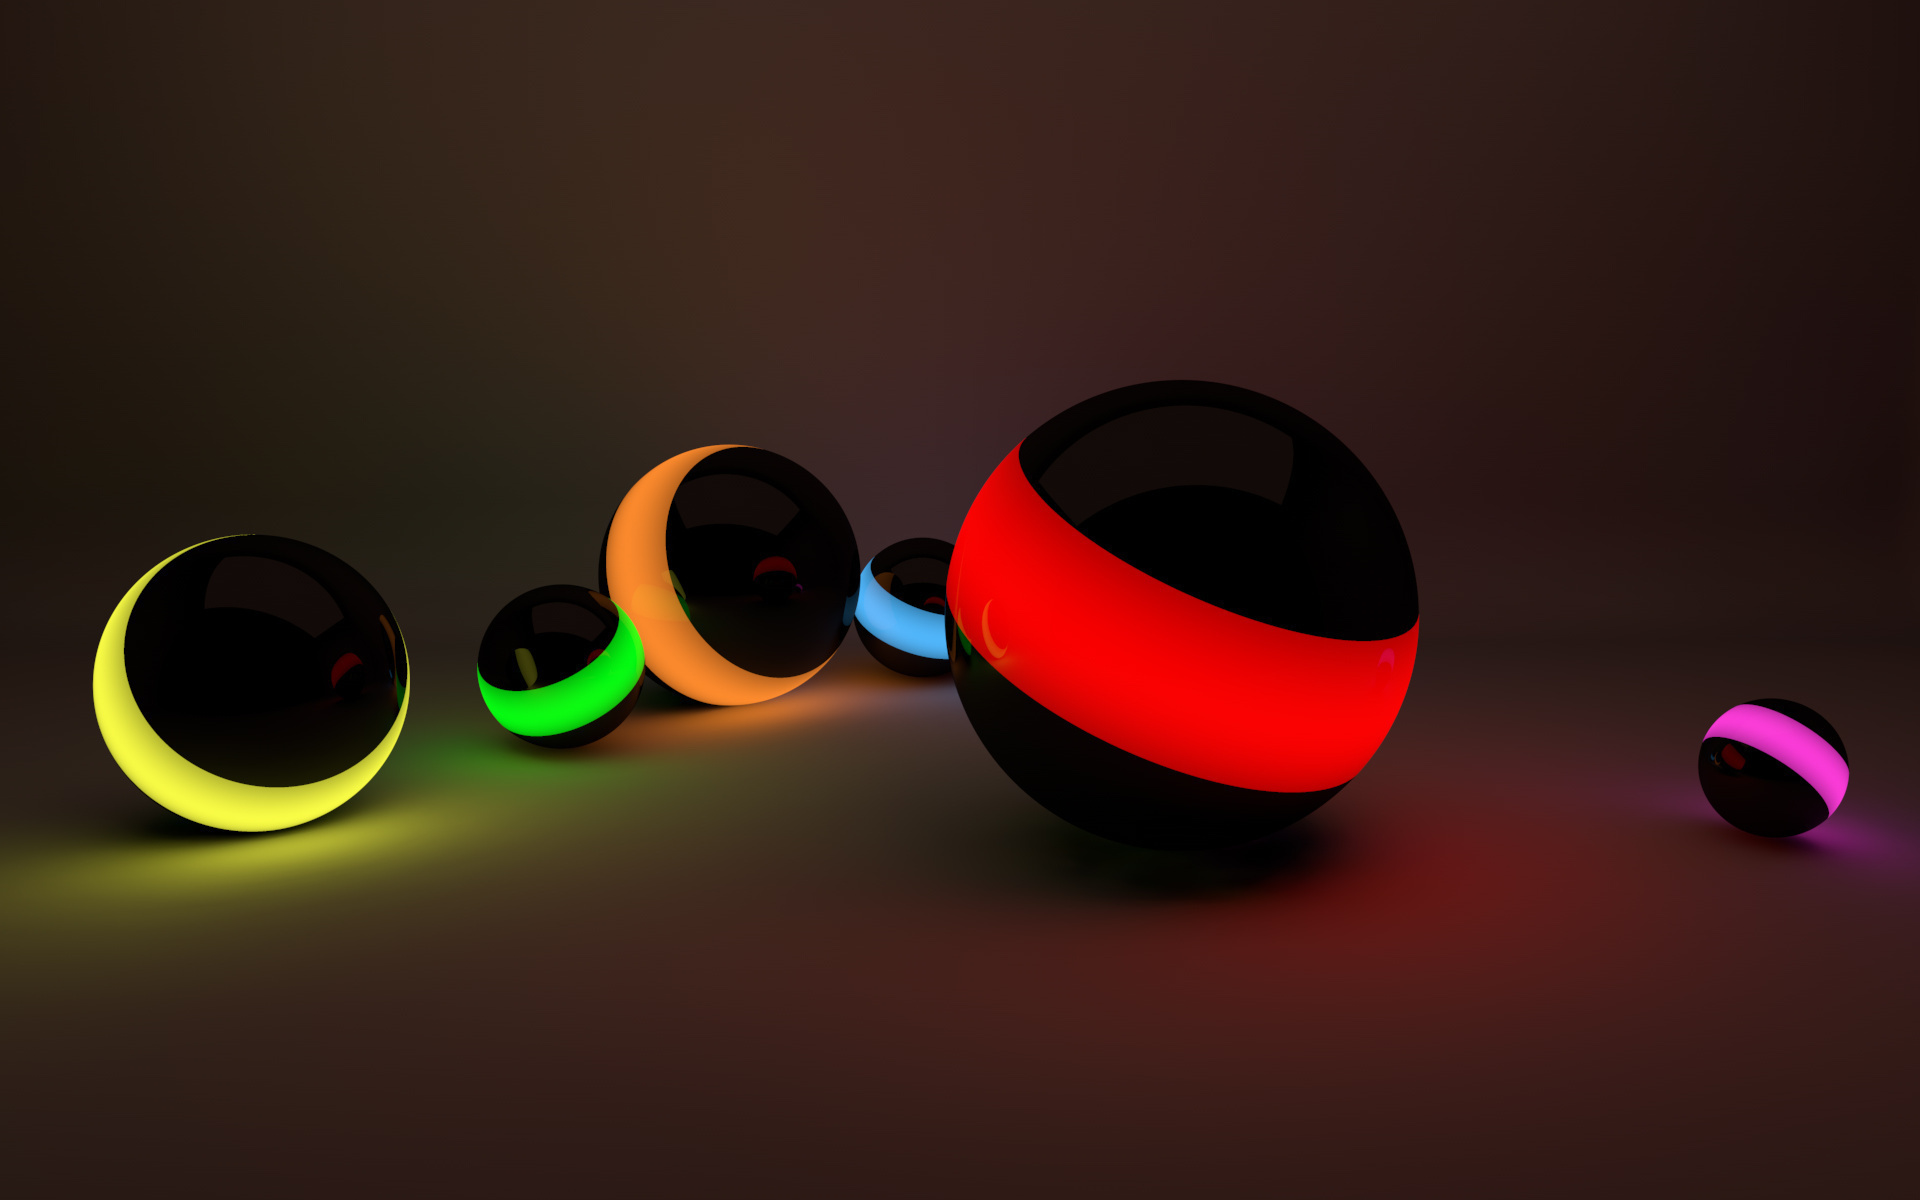 3d colored balls wallpapers - 1920x1200 - 210379